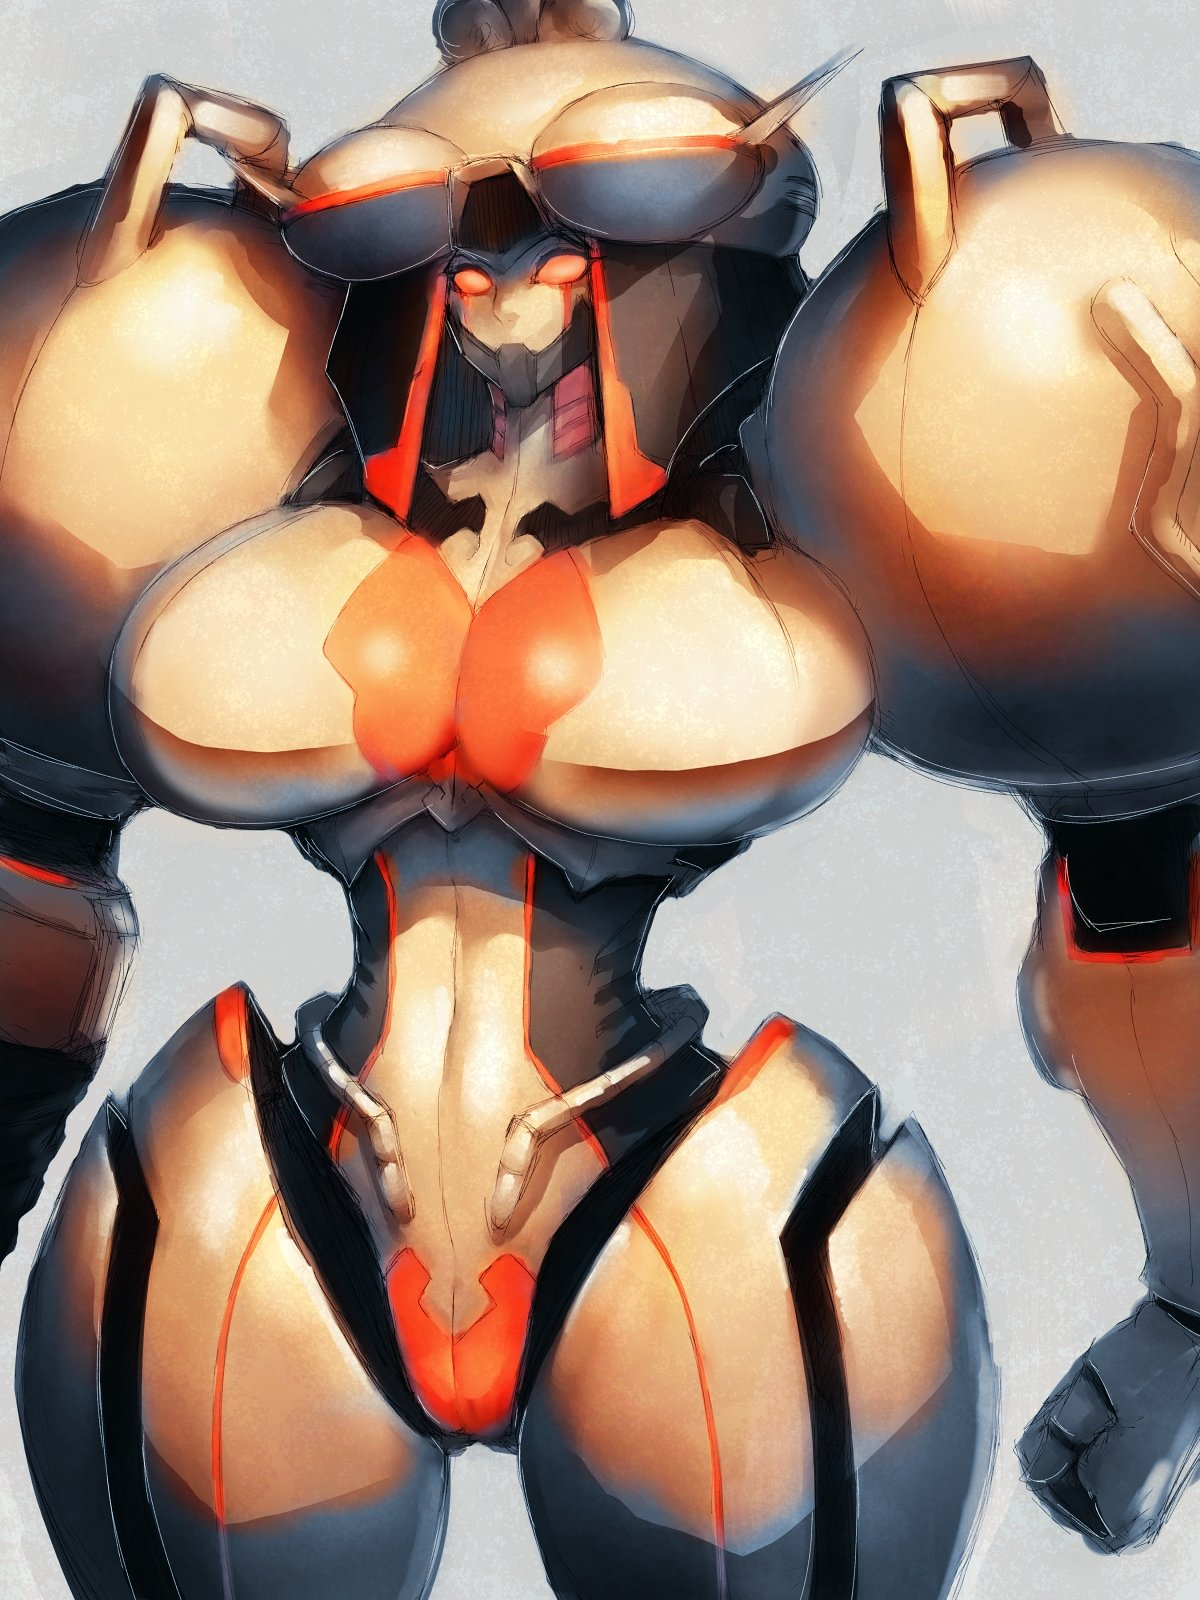 1girl breasts commentary_request covered_navel fumio_(rsqkr) genderswap genderswap_(mtf) highres huge_breasts looking_at_viewer orange_eyes phobos_(vampire) robot solo thick_thighs thighs vampire_(game)